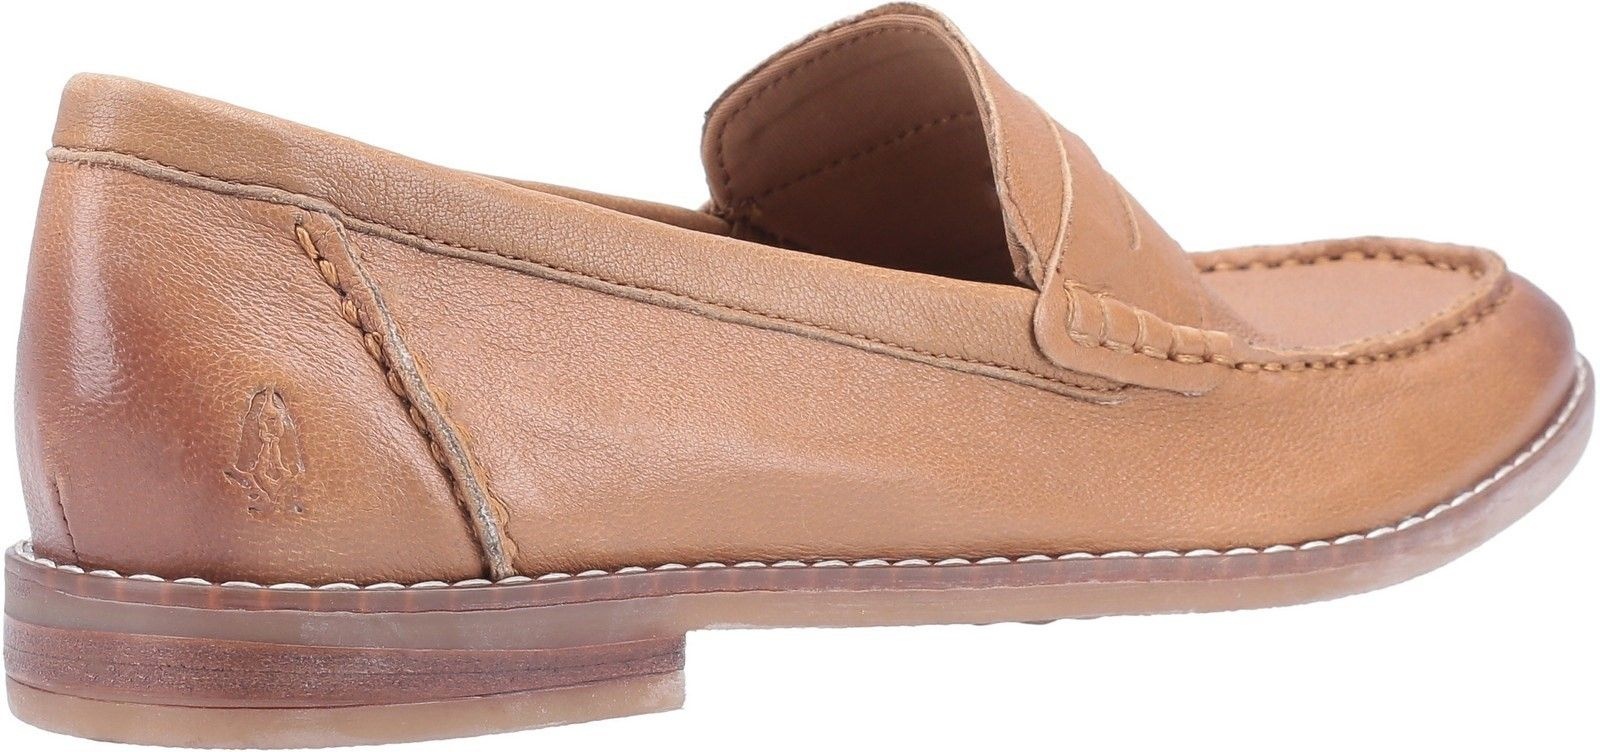 Wren Slip On Loafer